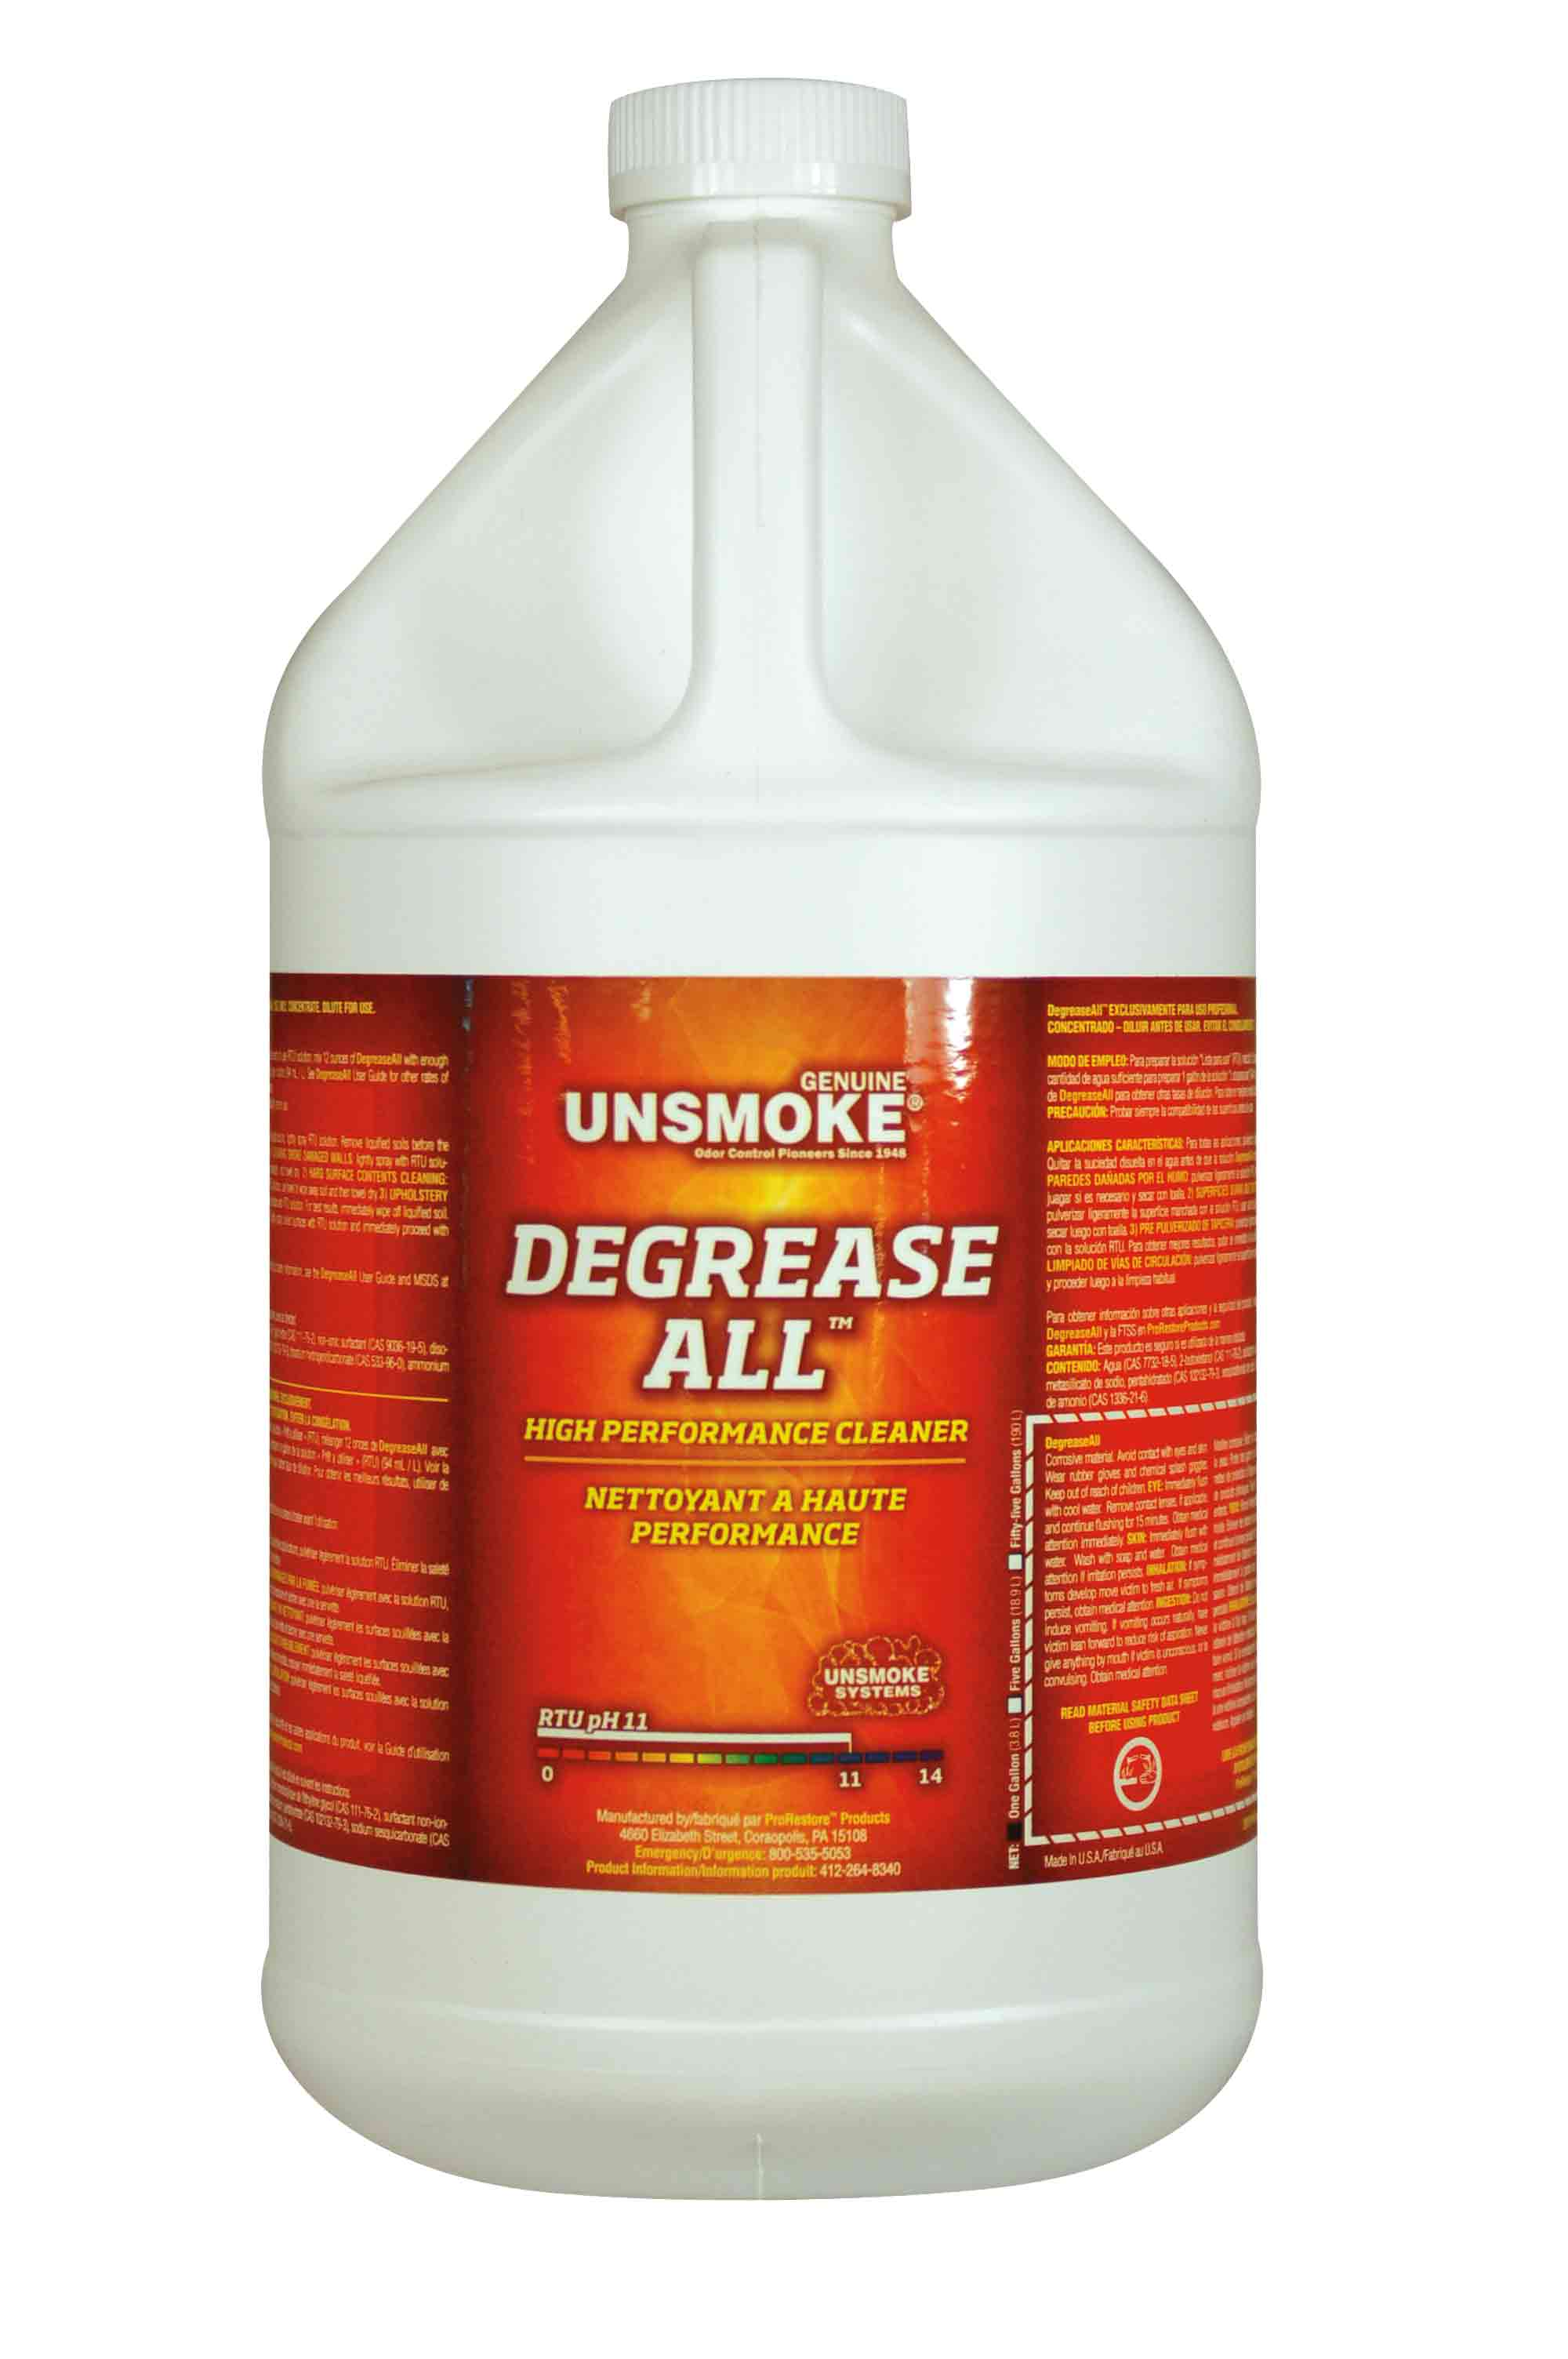 Unsmoke Degrease All